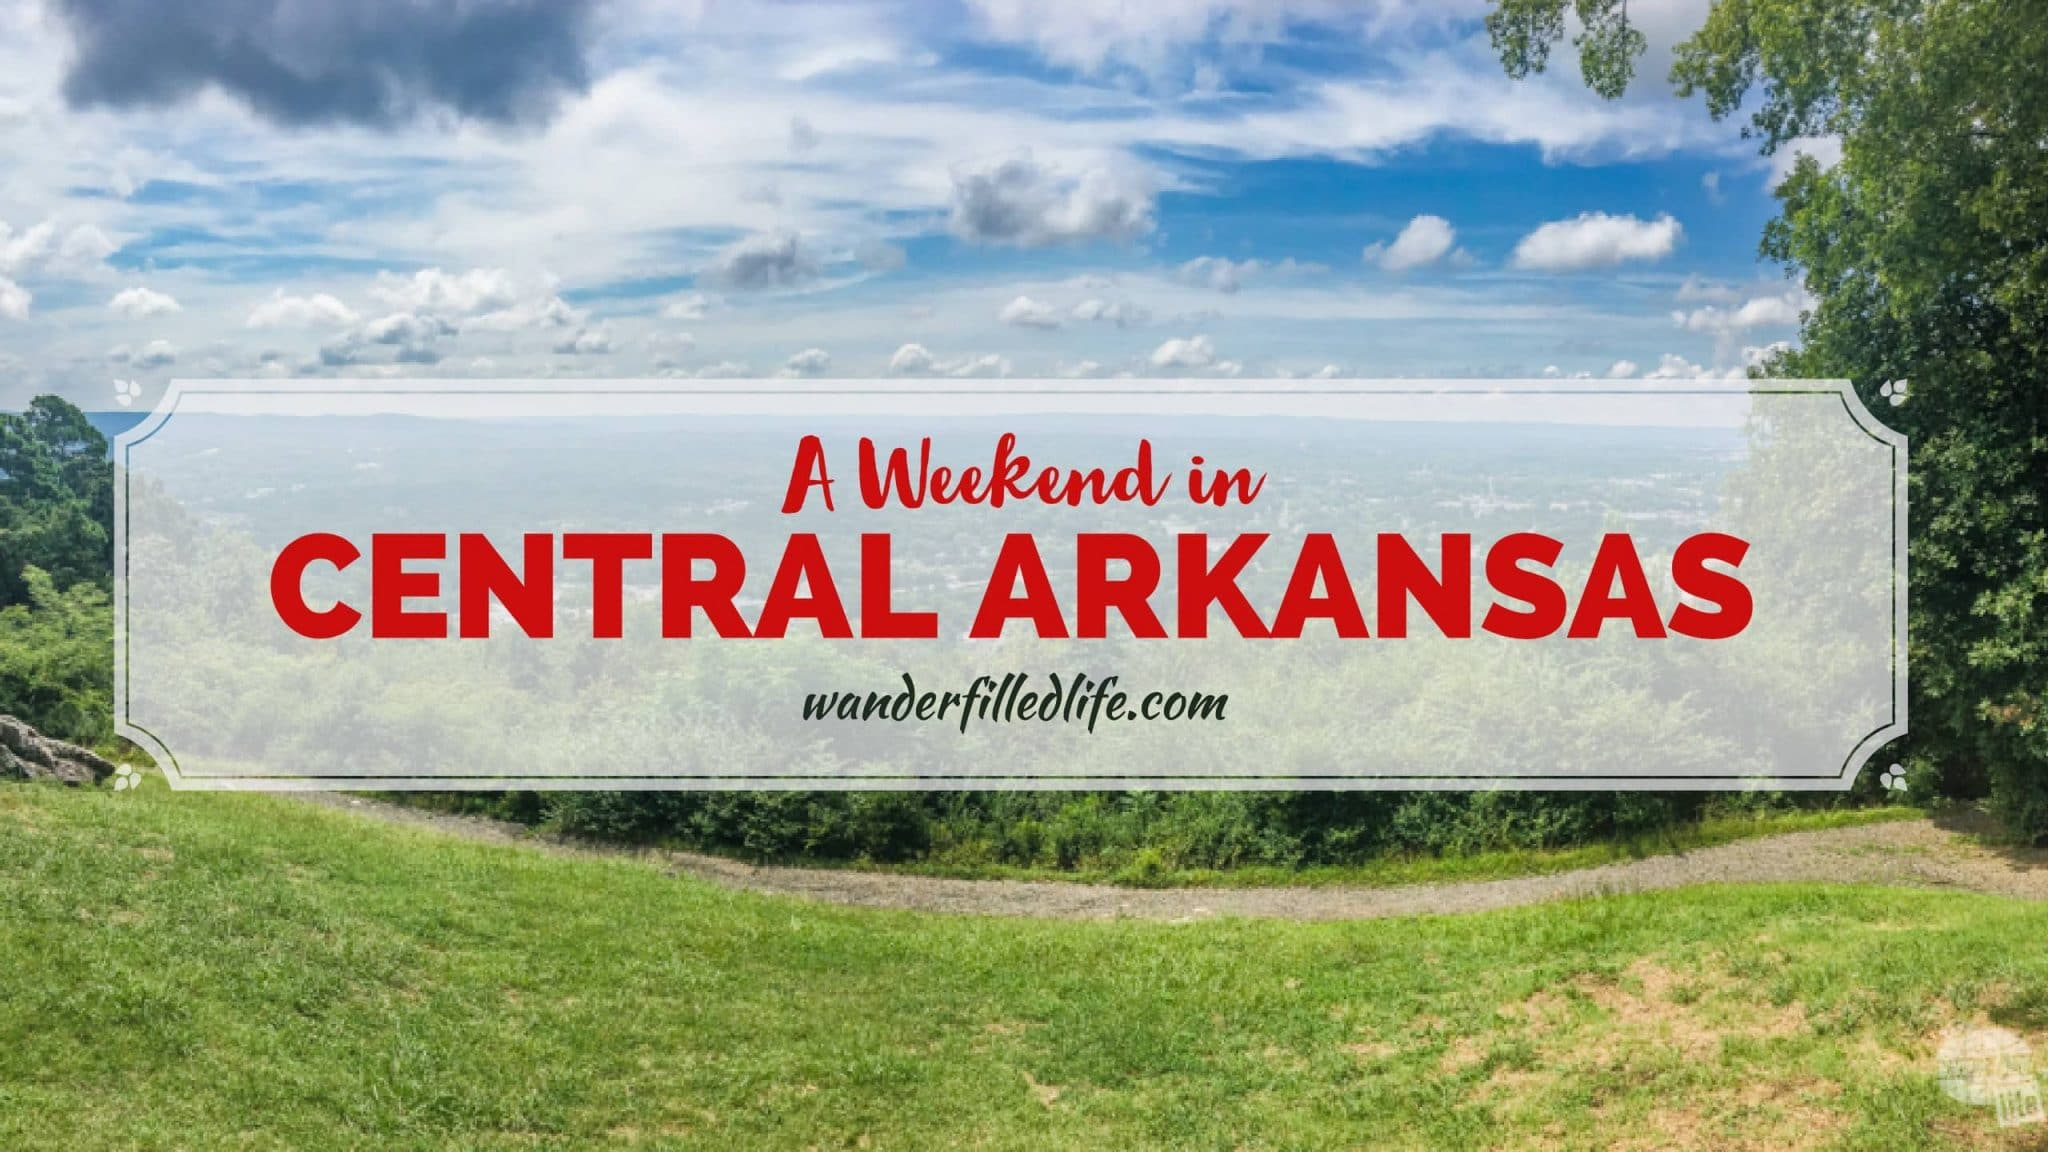 A Weekend in Central Arkansas